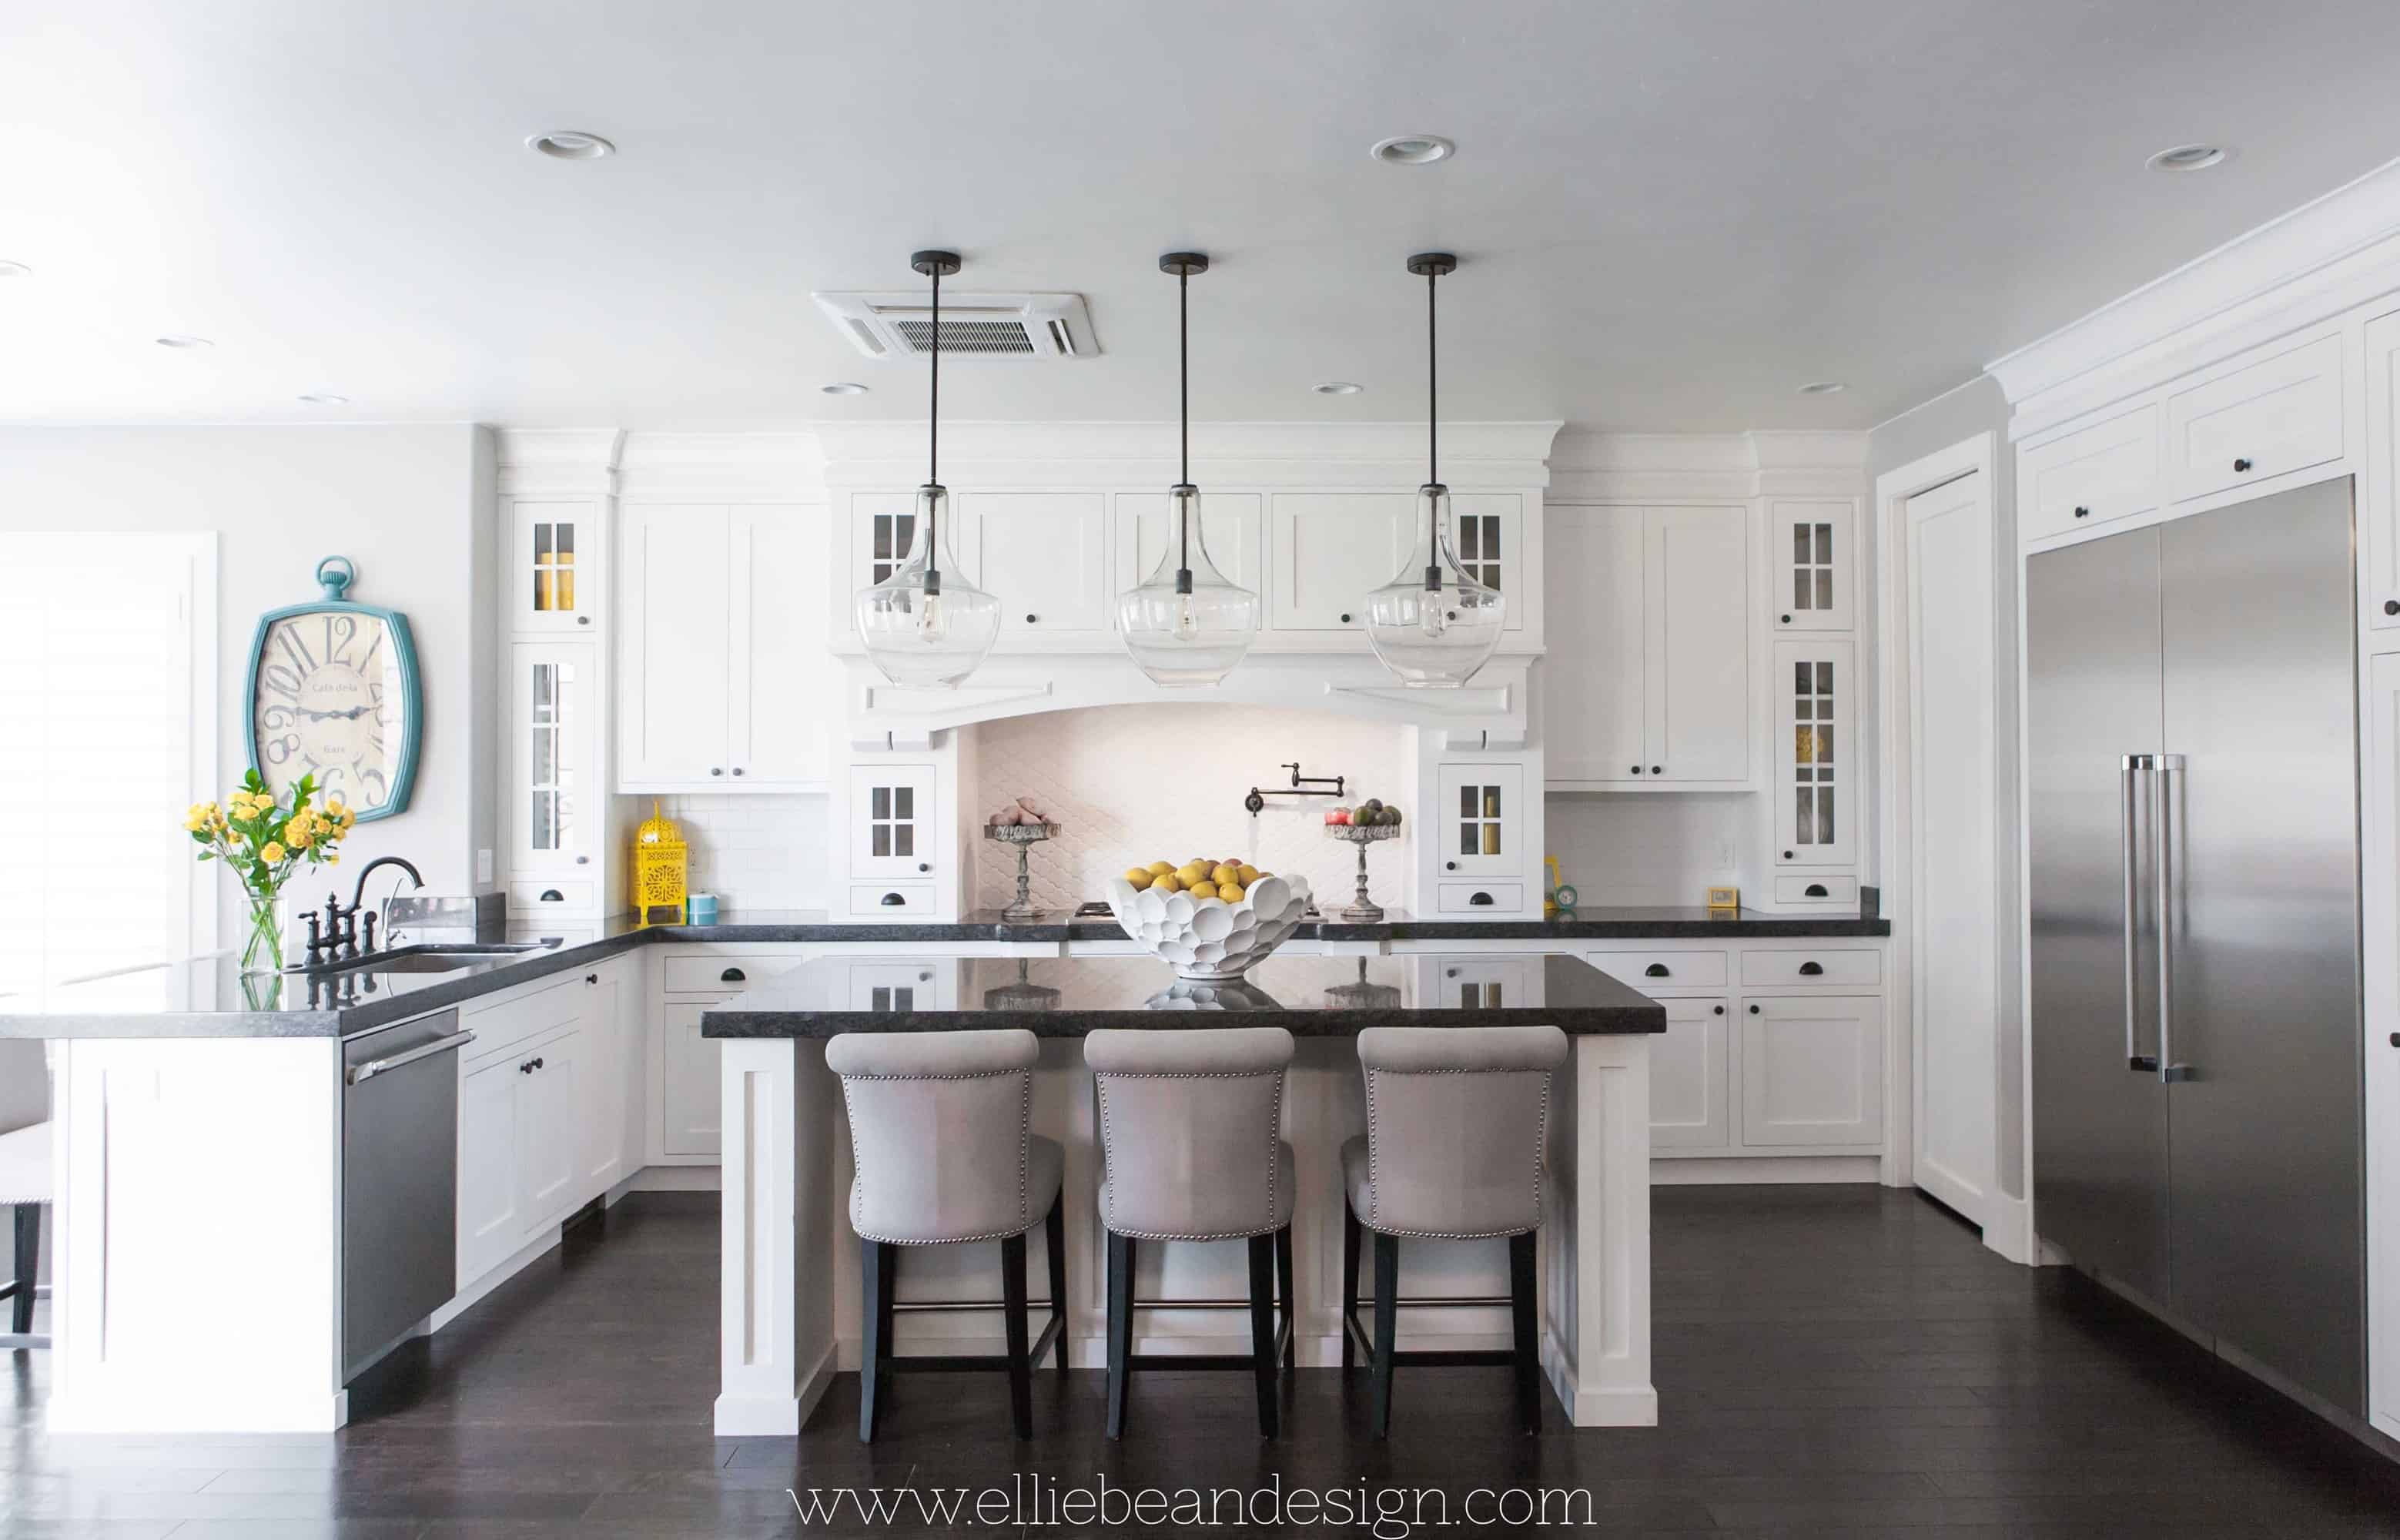 10 Rules To Create The Perfect White Kitchen